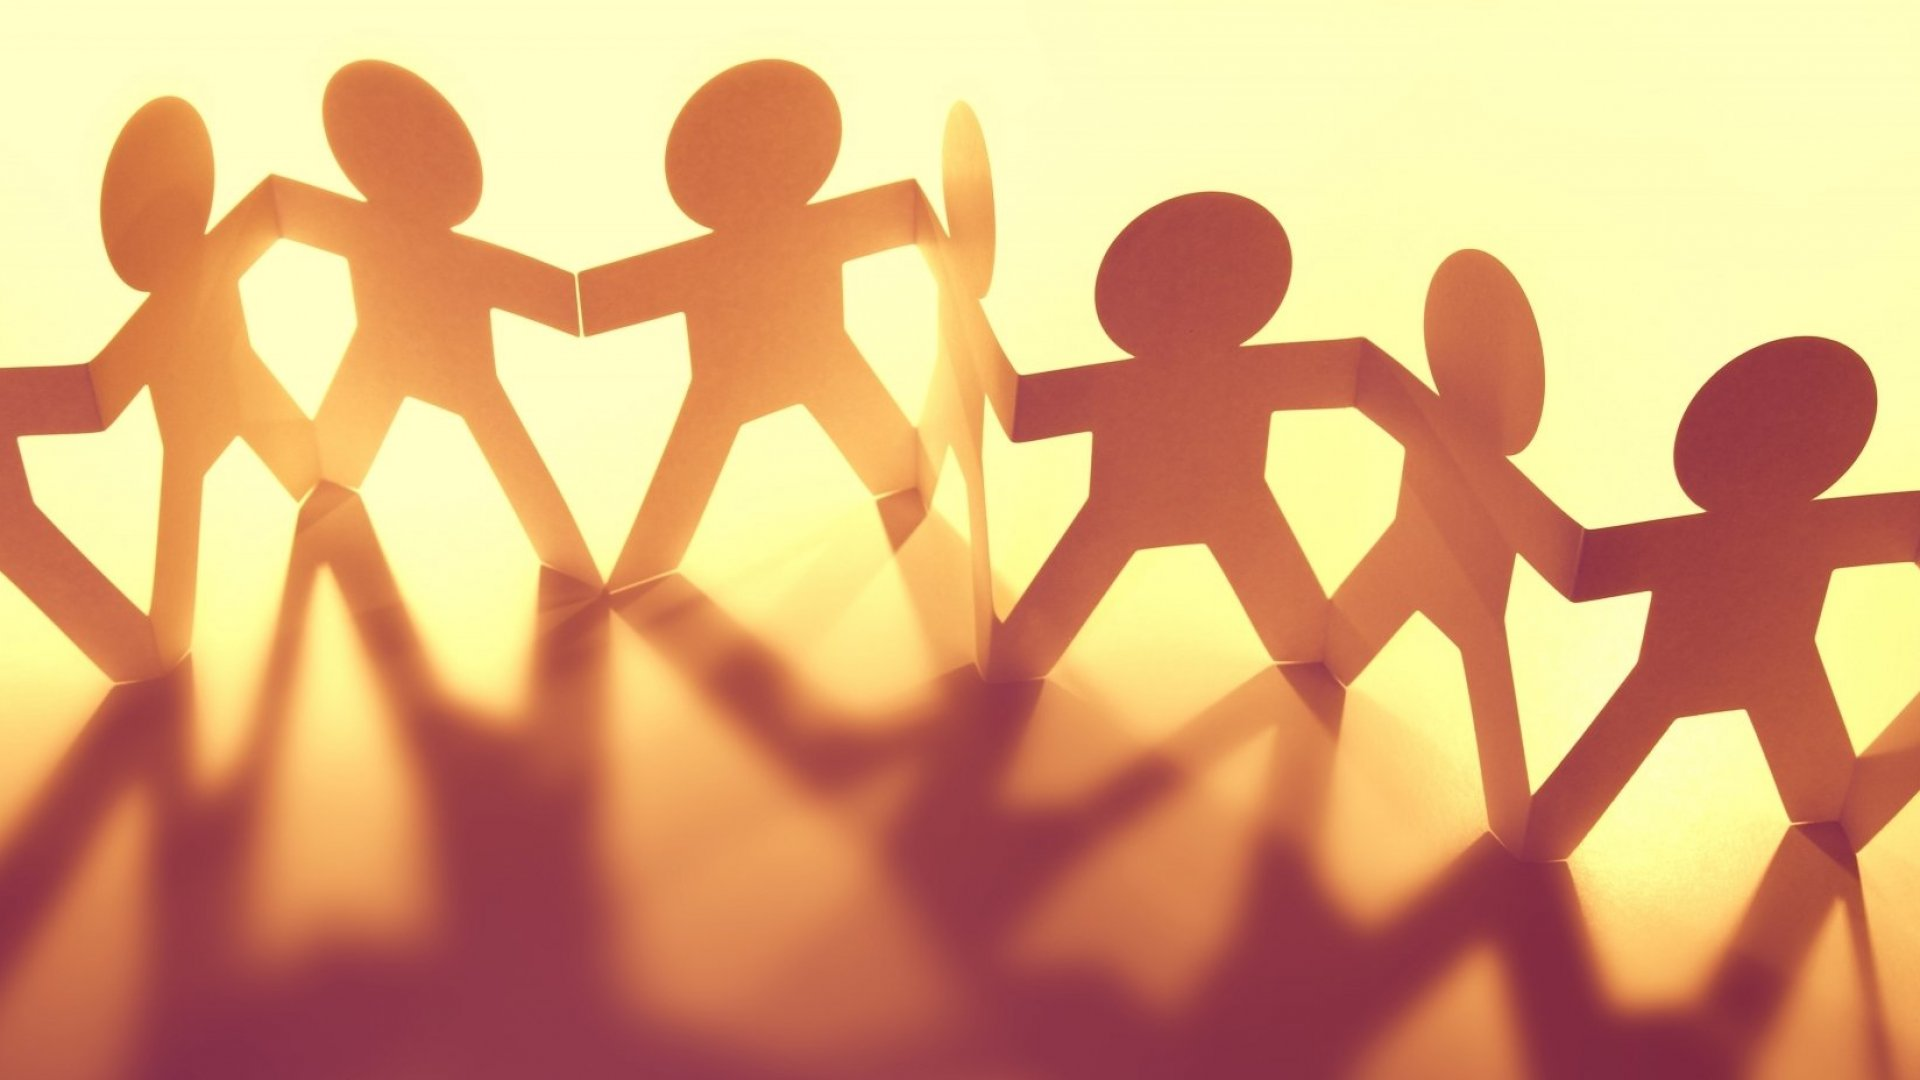 Tired of Shallow Work Relationships? Here Are 5 Ways to Build Camaraderie and Foster Community